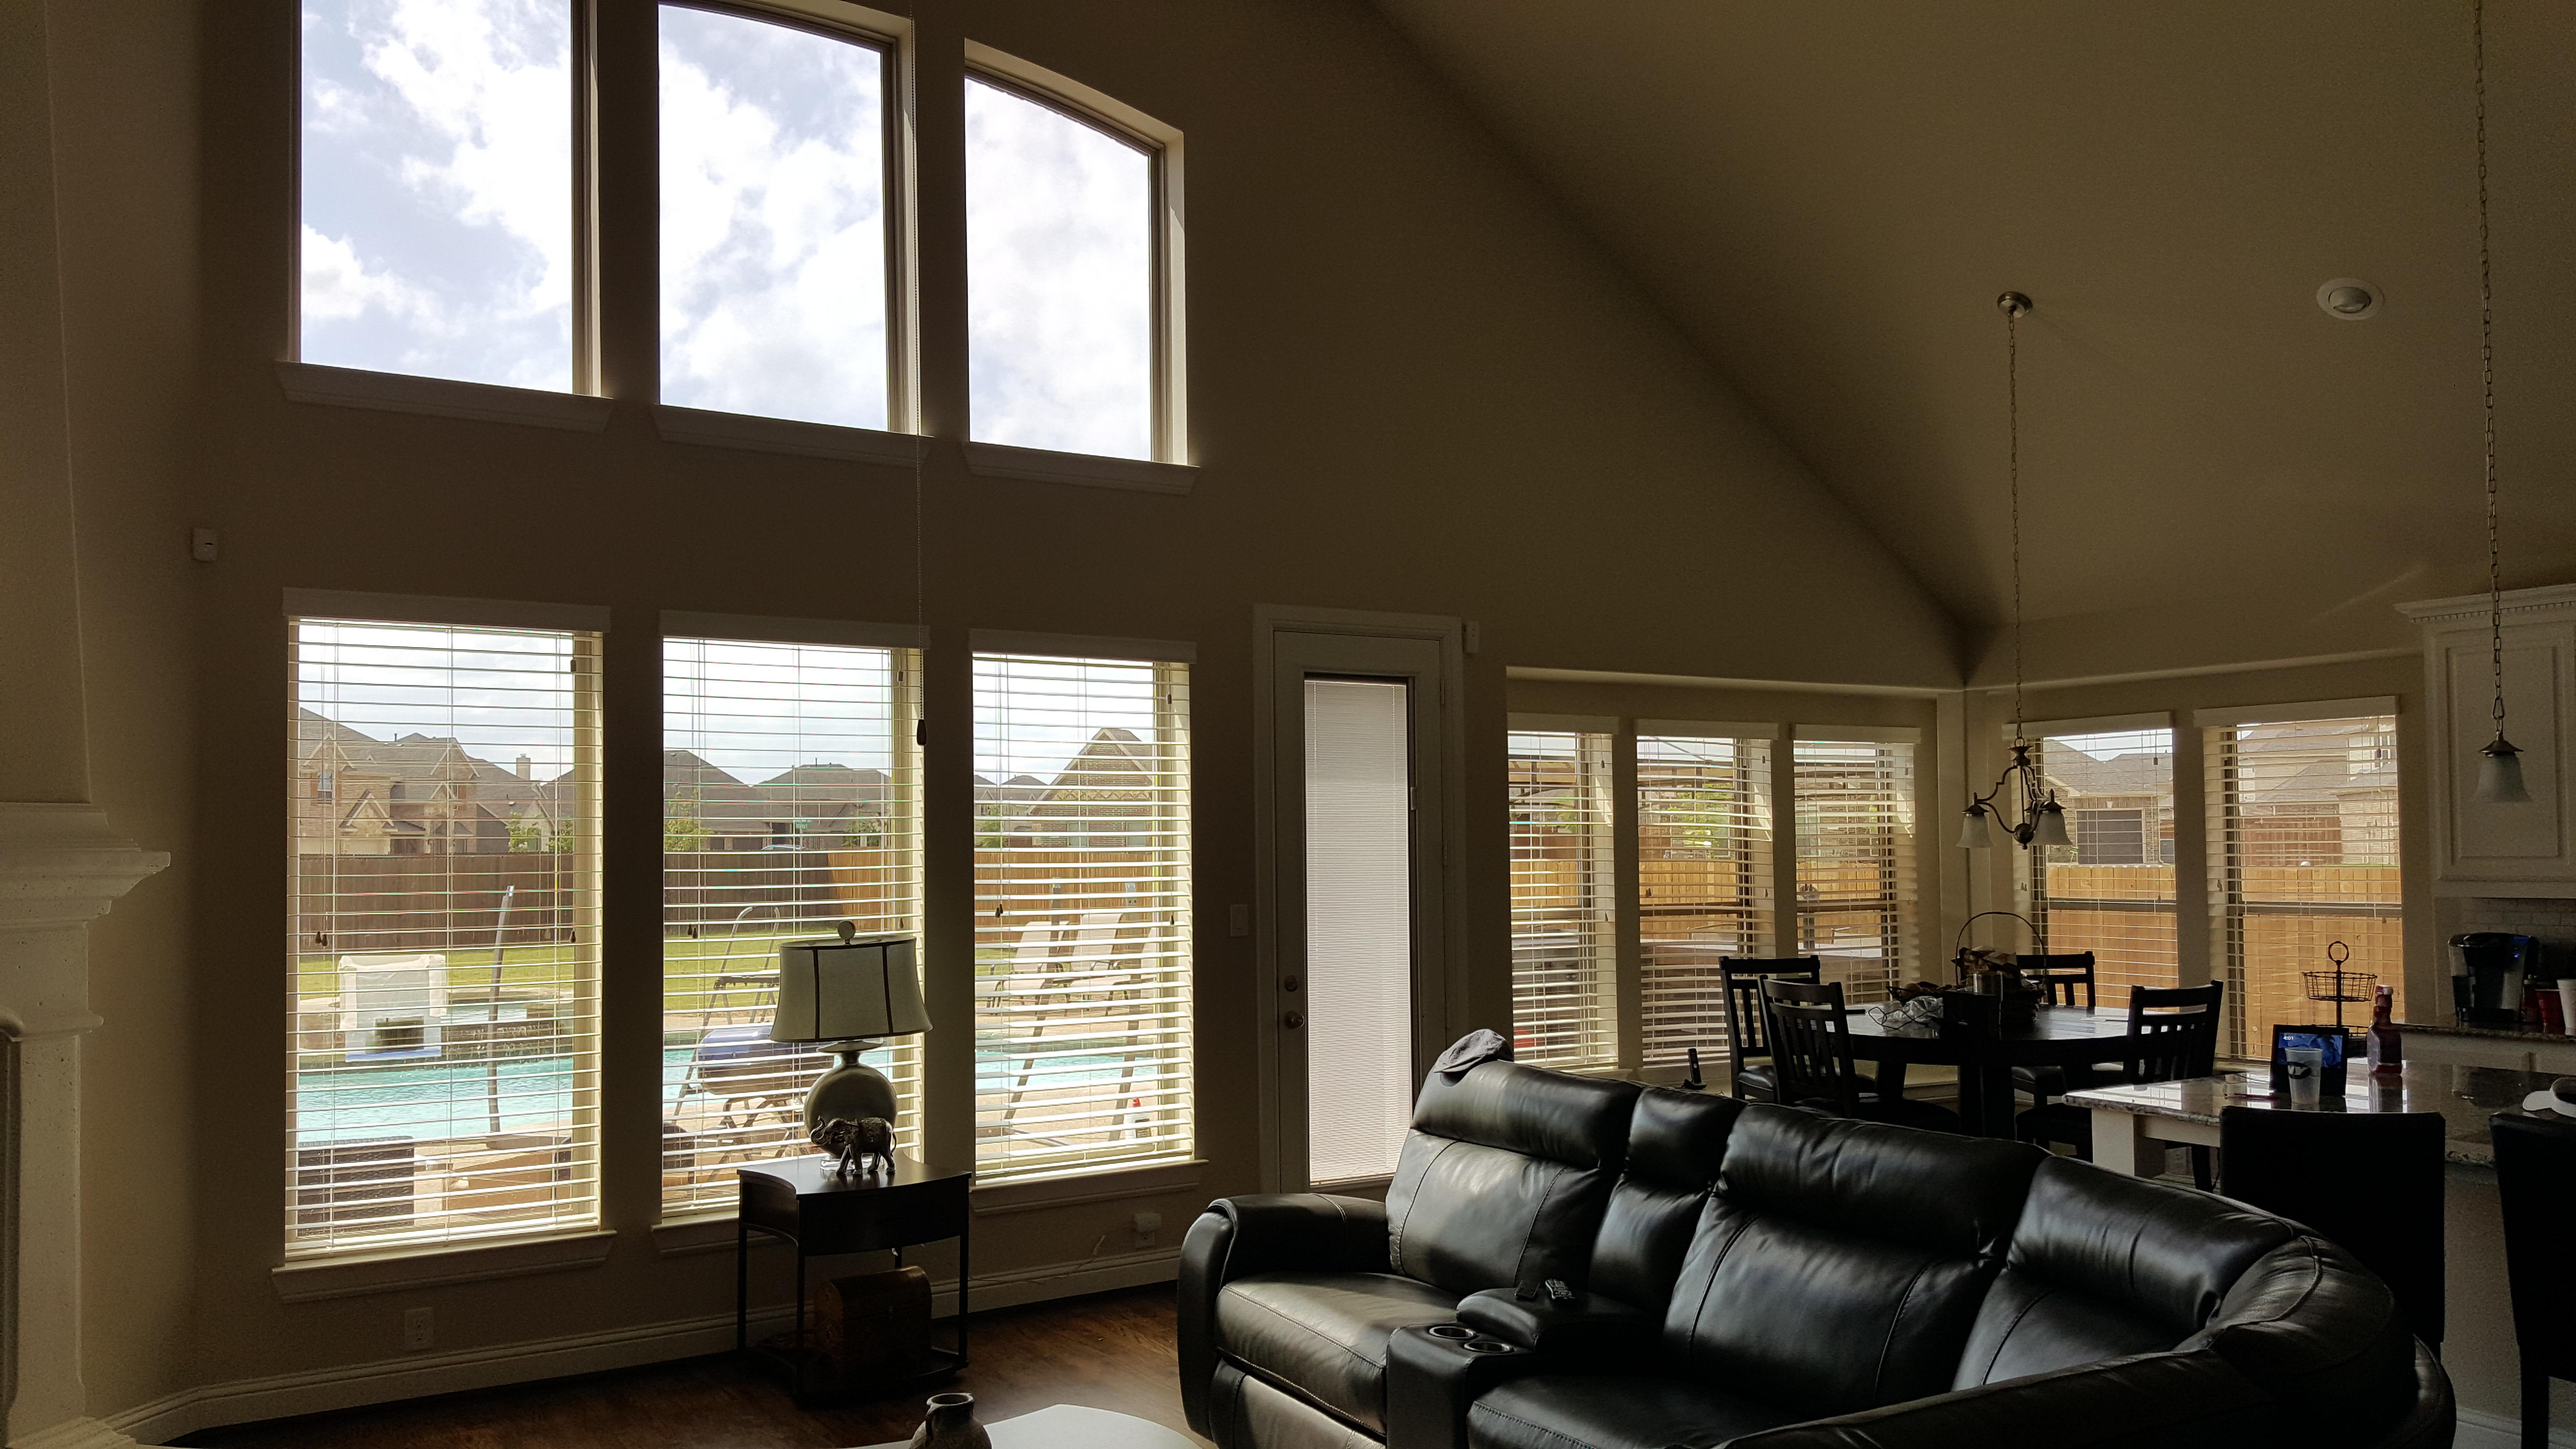 House Tinters image 0